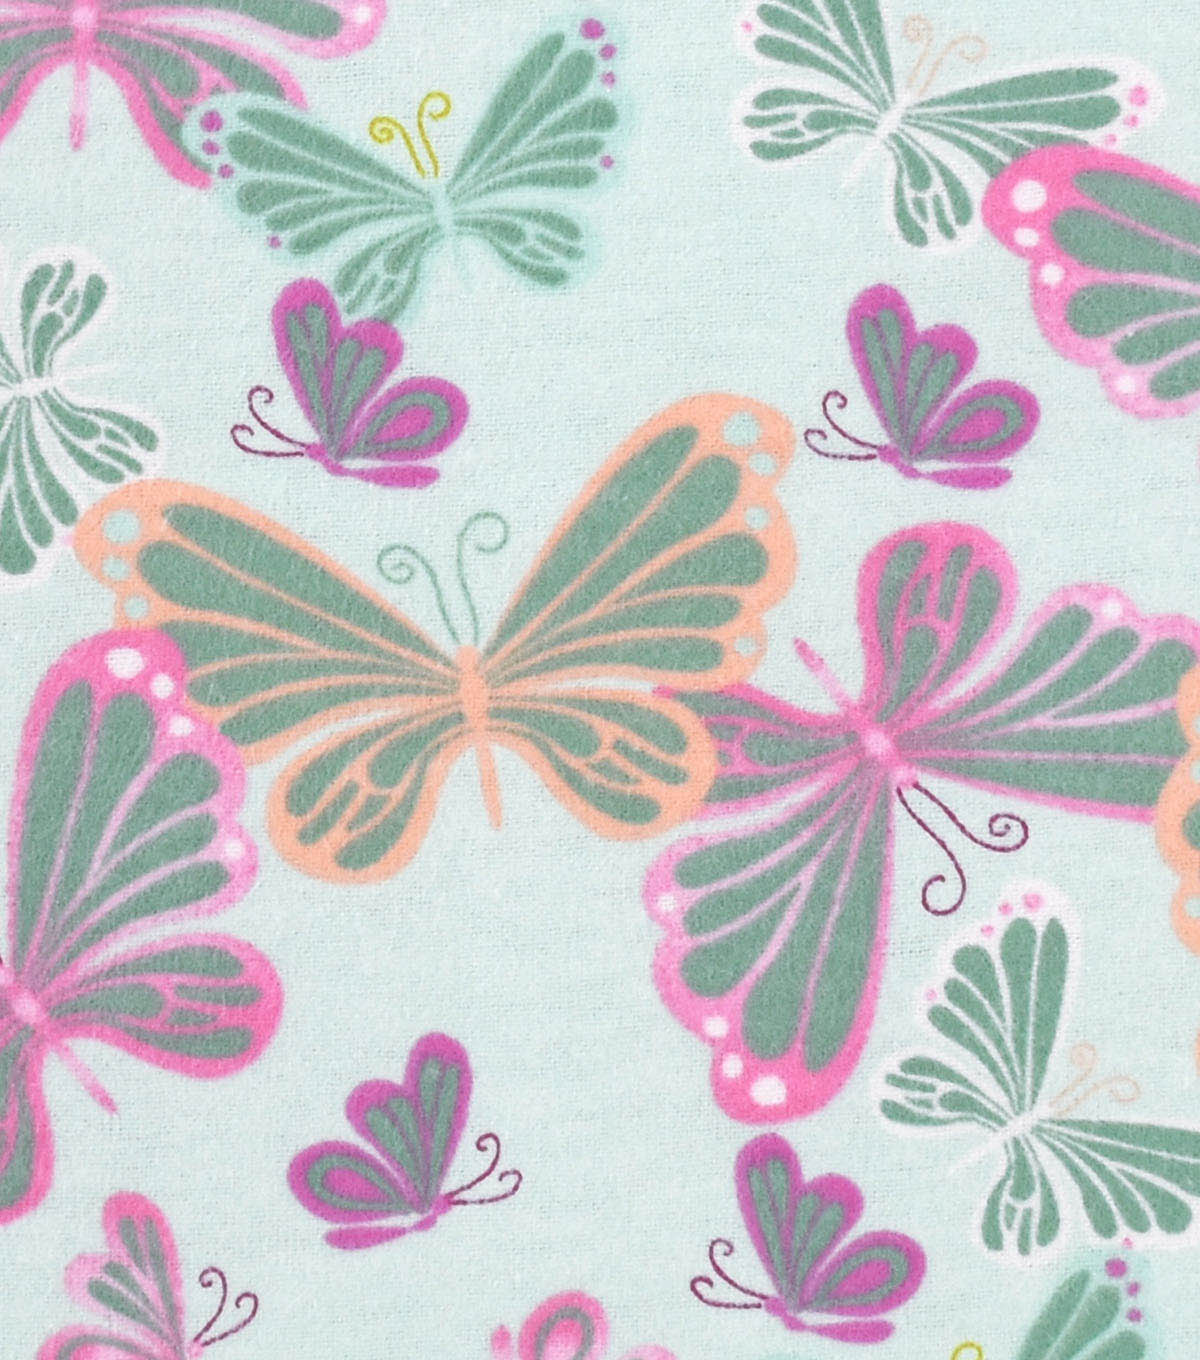 Snuggle Flannel Fabric -Butterflies On Mint